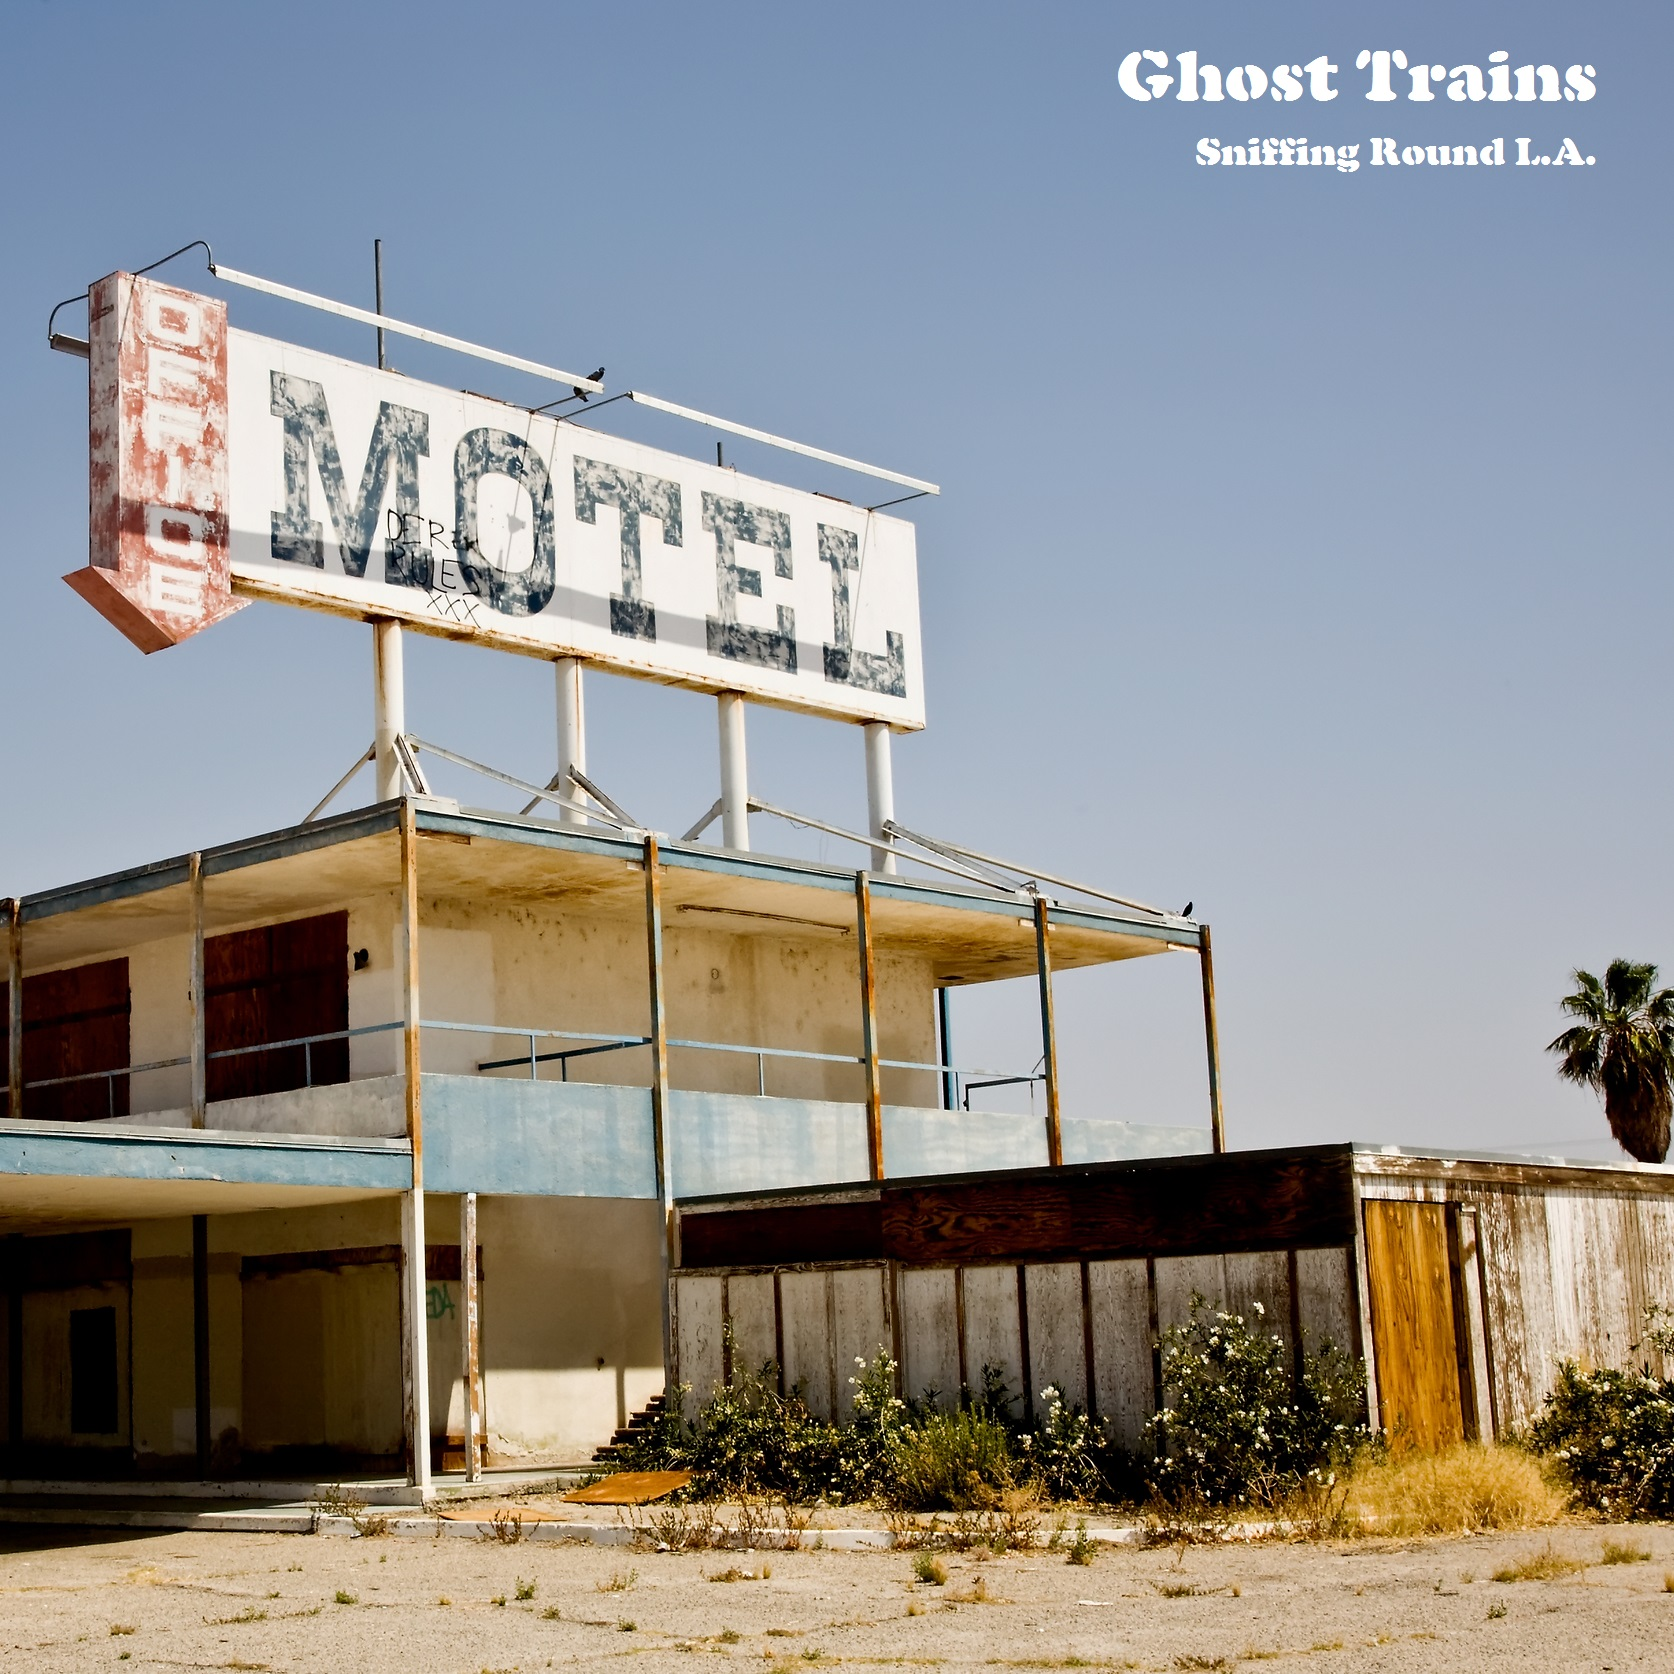 Sniffing Round L.A. (Remastered) - Ghost Trains